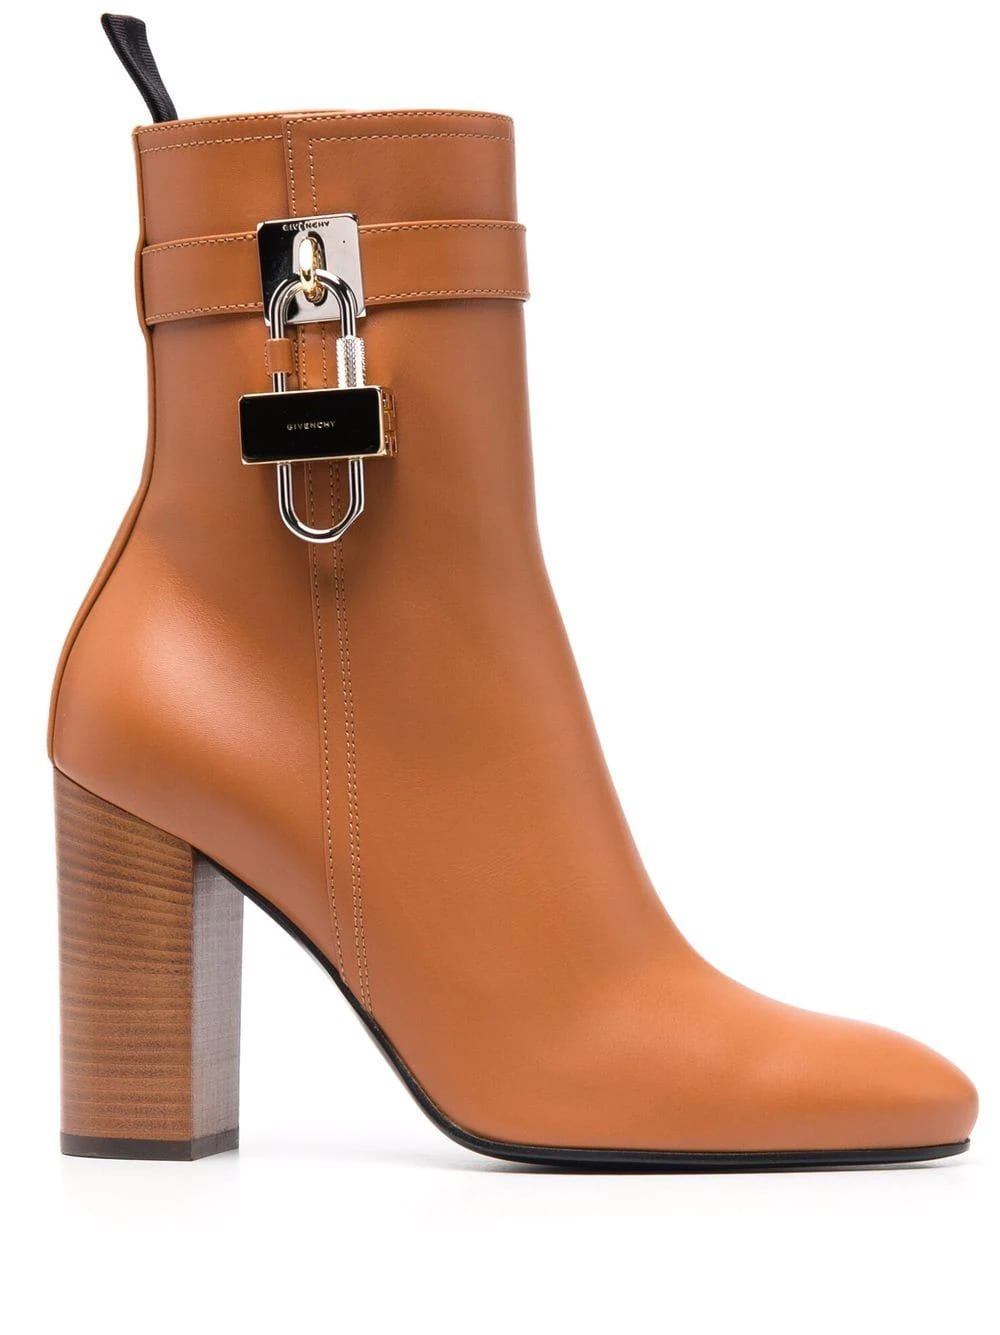 Givenchy Light Brown Leather Ankle Boot With Padlock